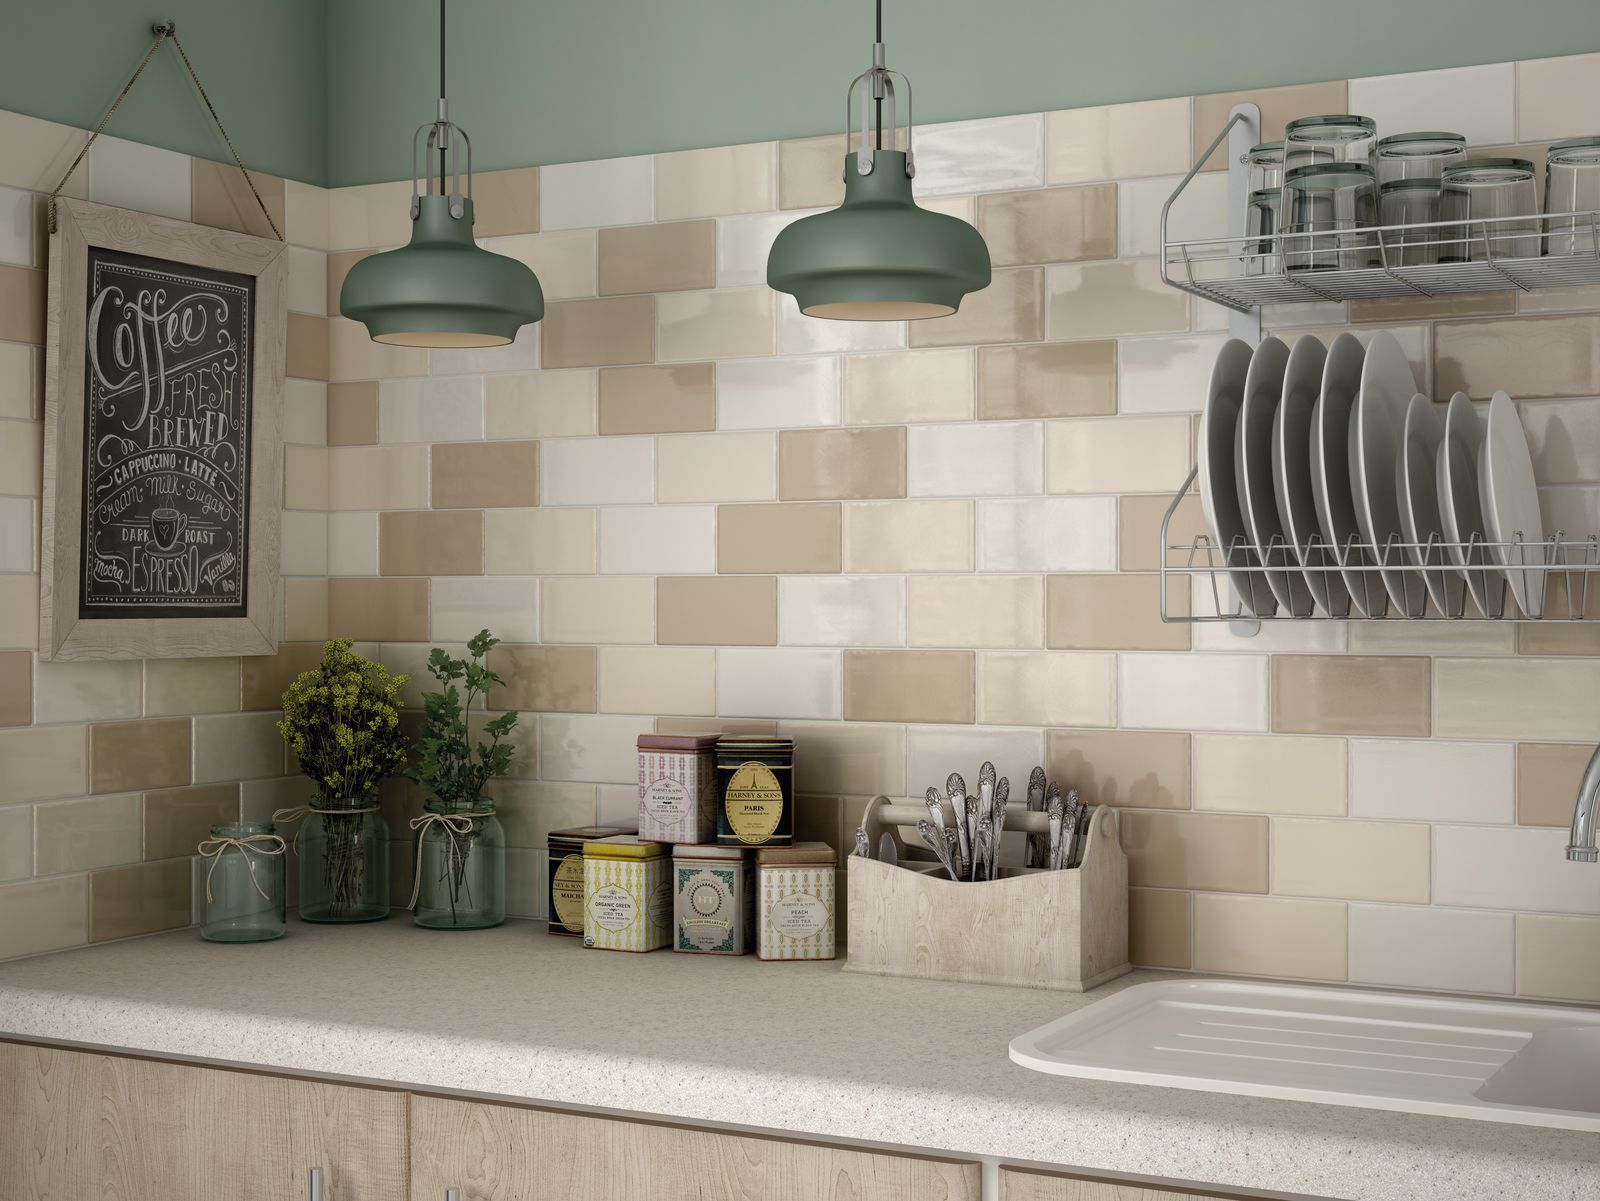 Hampton Beige Brick Tiles Kitchen Kitchen Tiles Kitchen Wall Tiles